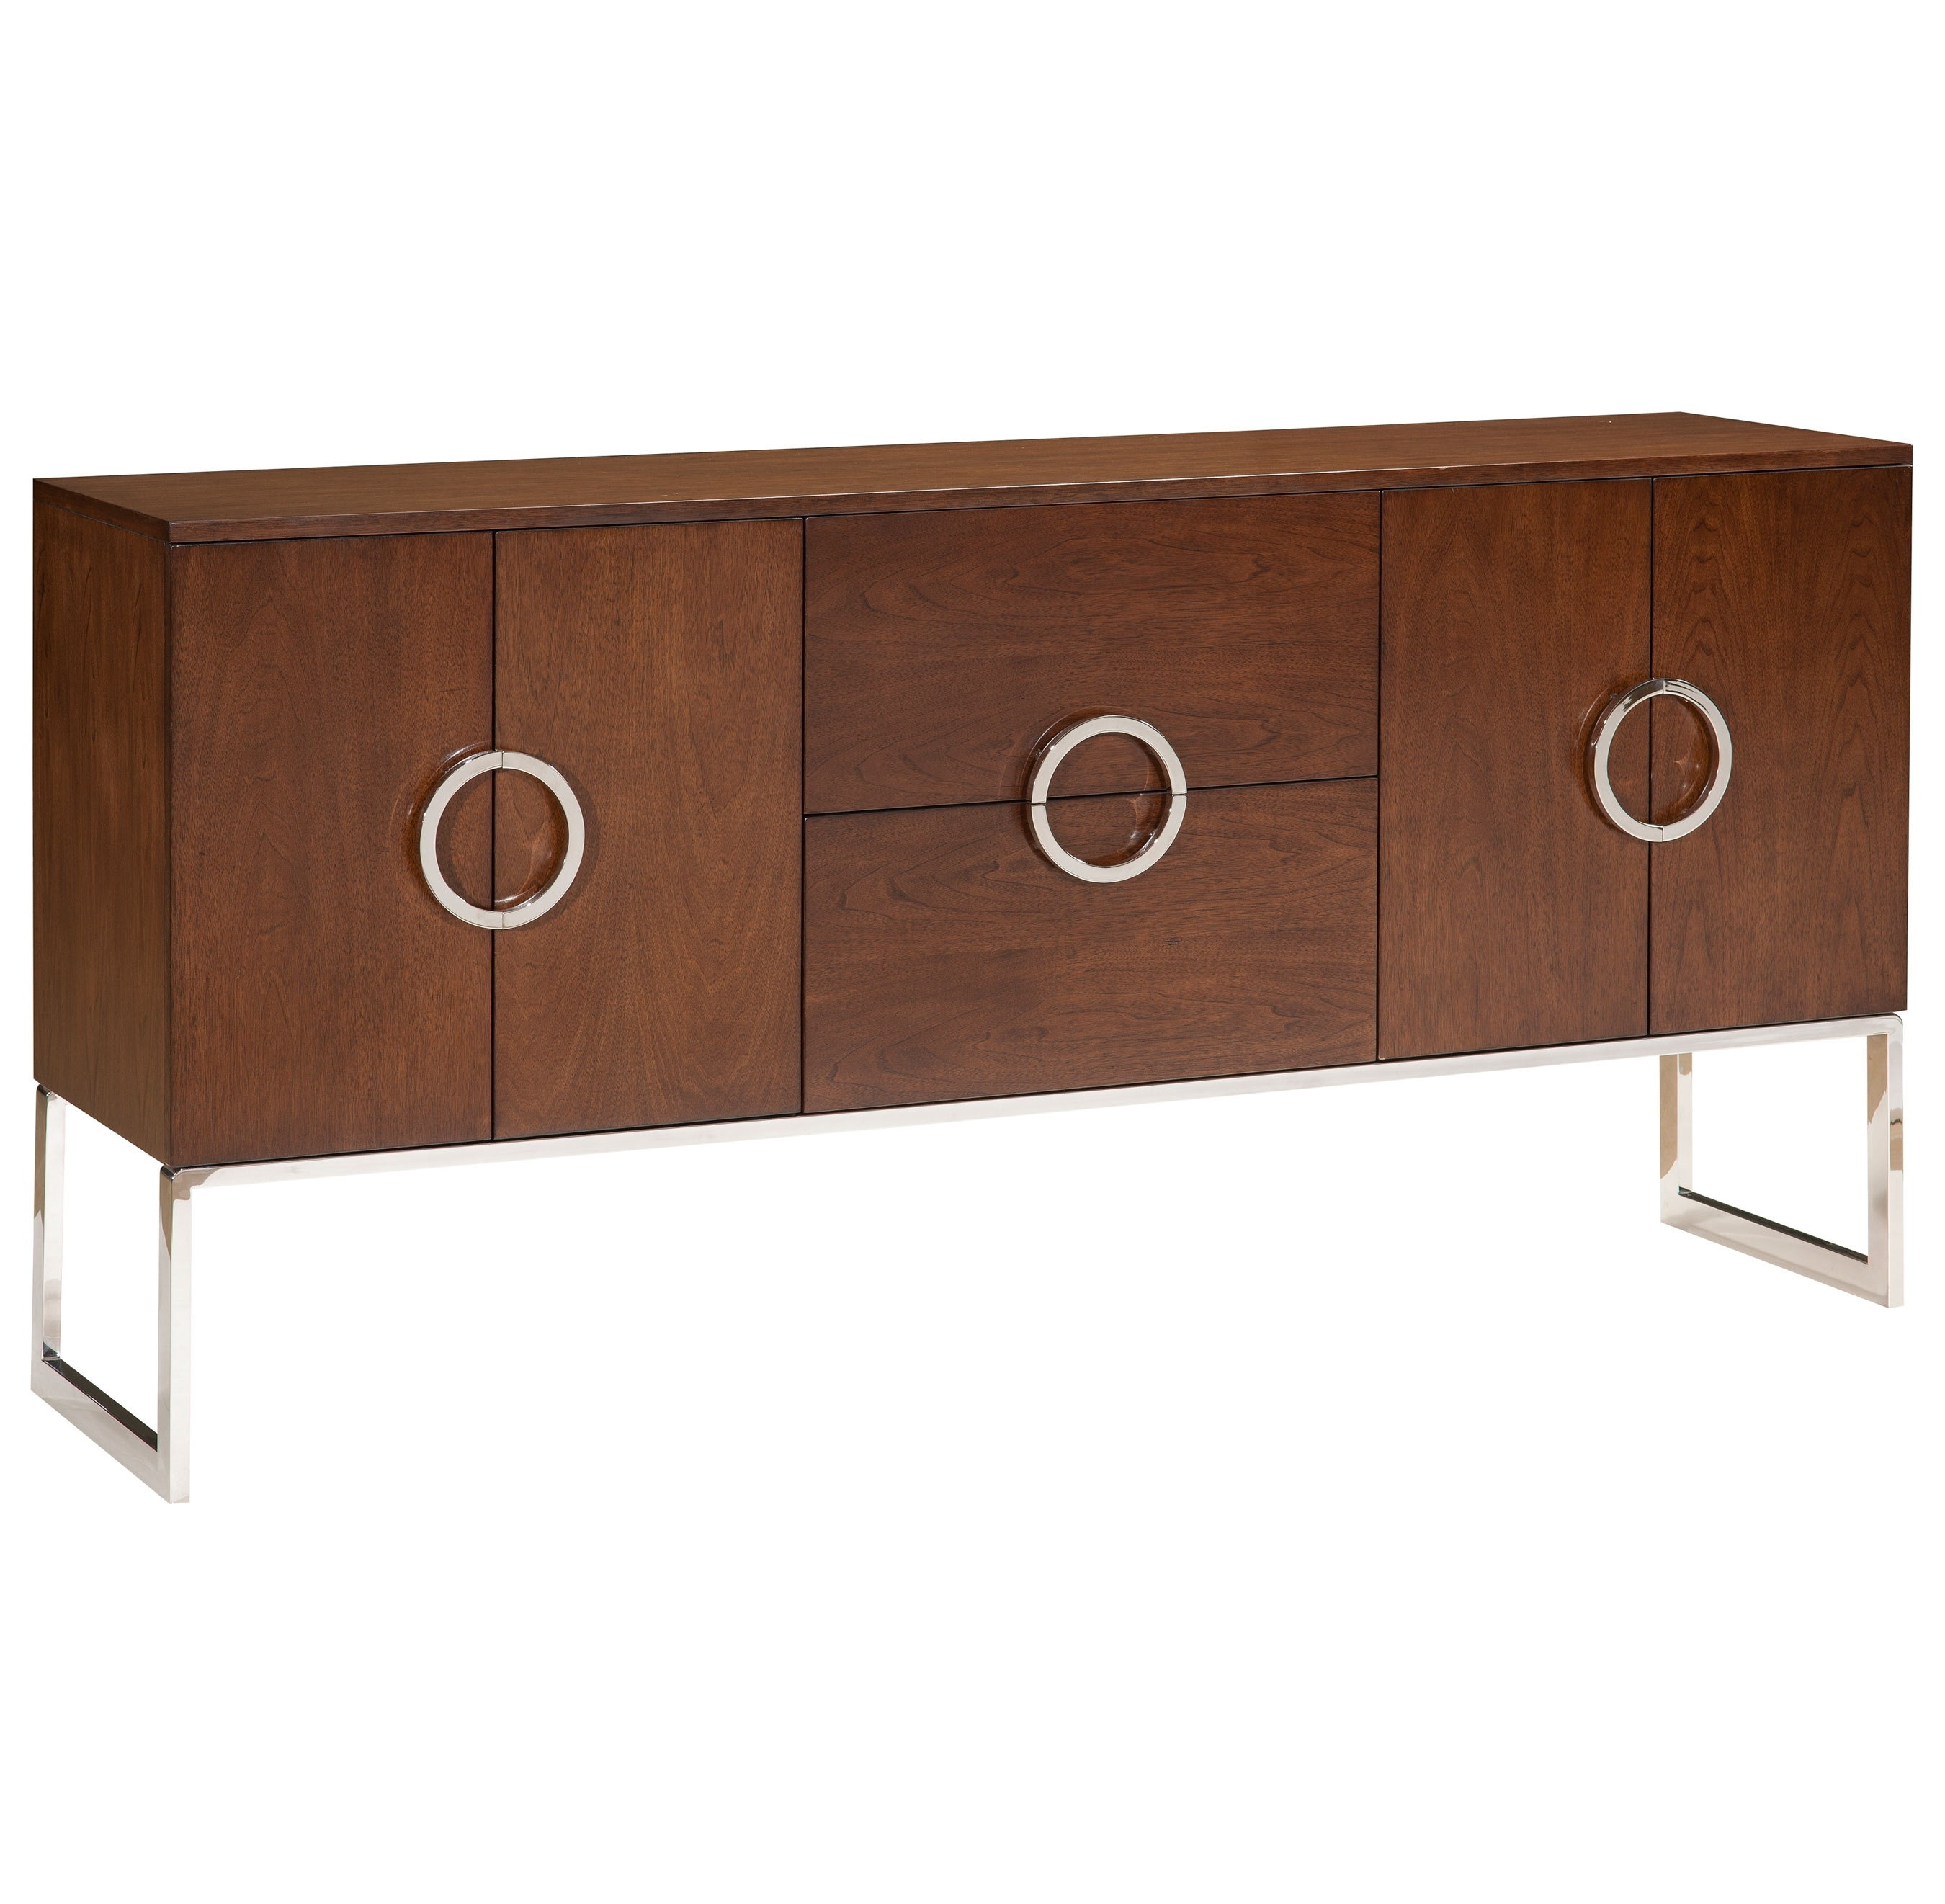 Buffets & Sideboards | Kathy Kuo Home inside Walnut Finish Contempo Sideboards (Image 5 of 30)